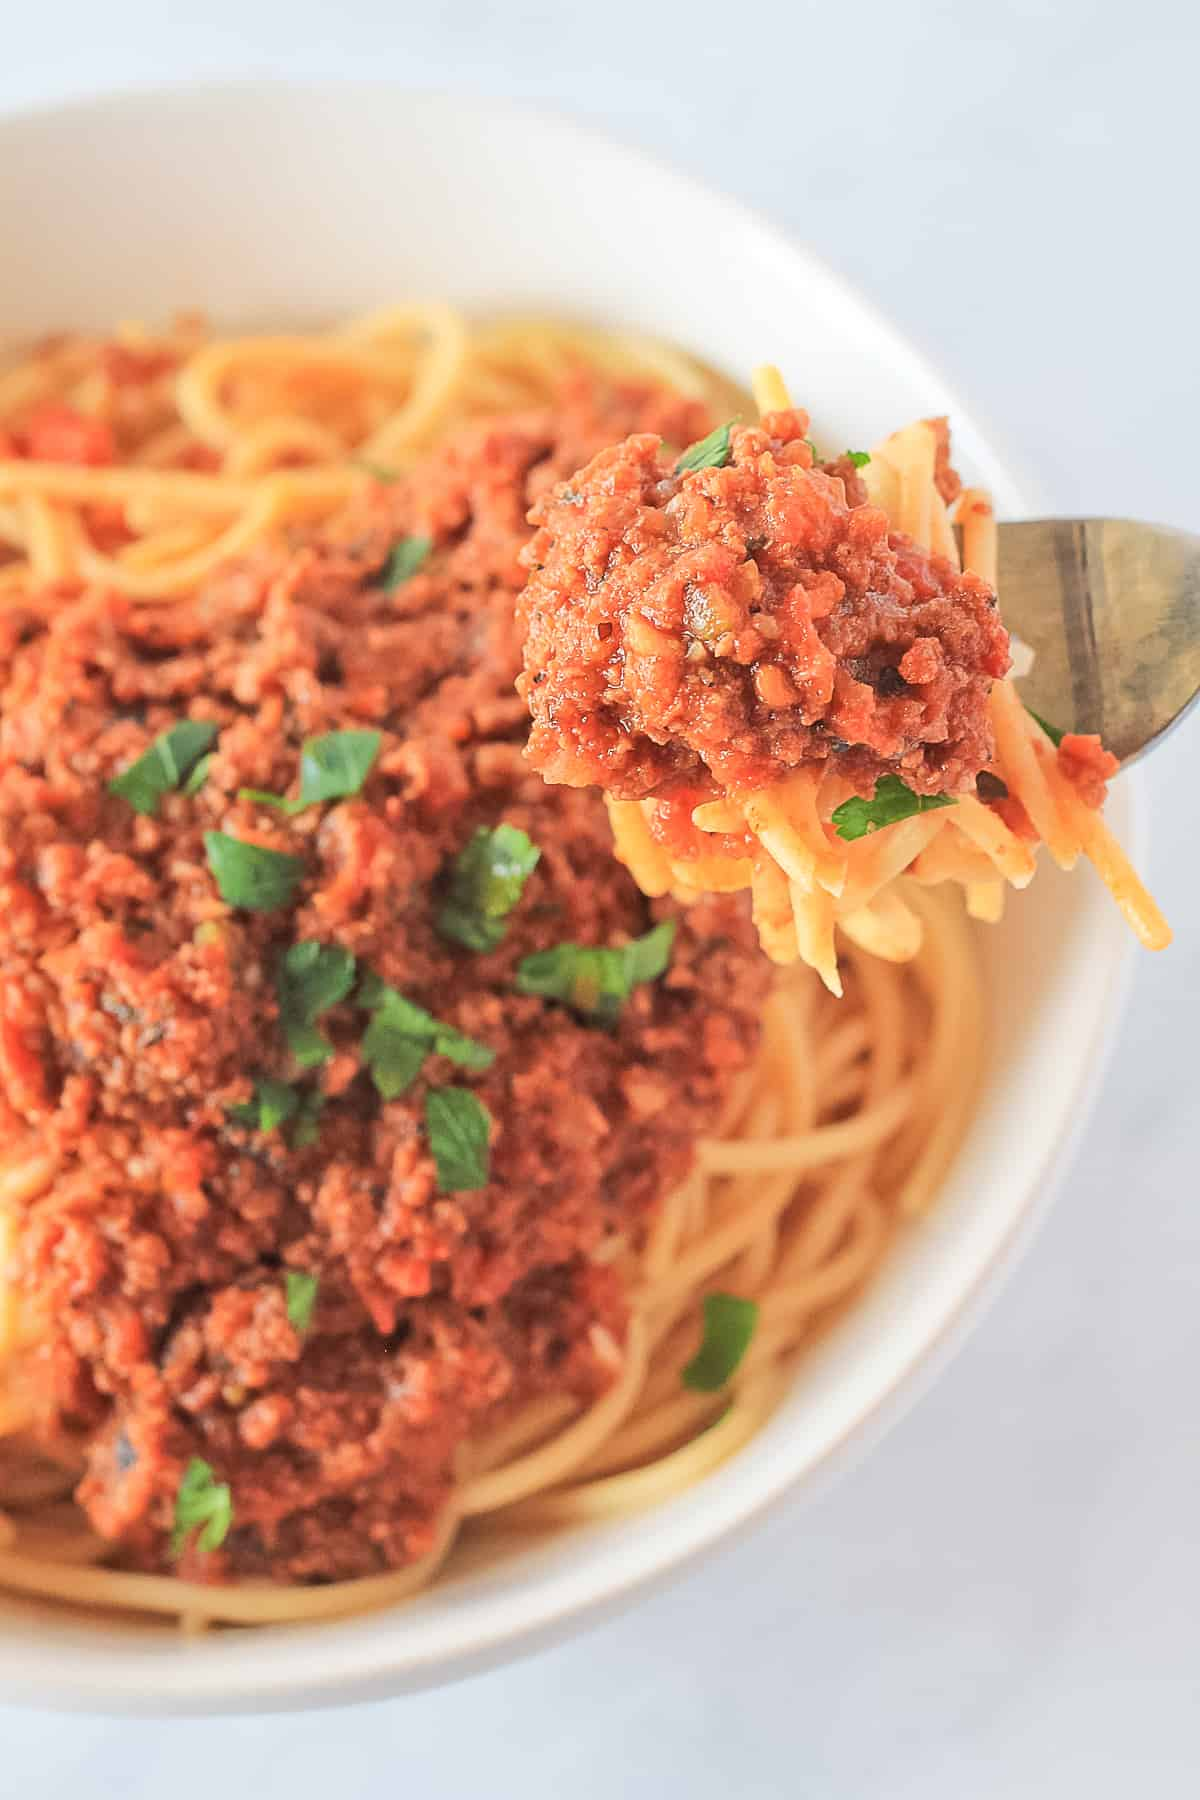 Fork full bite of spaghetti and bolognese pasta sauce.